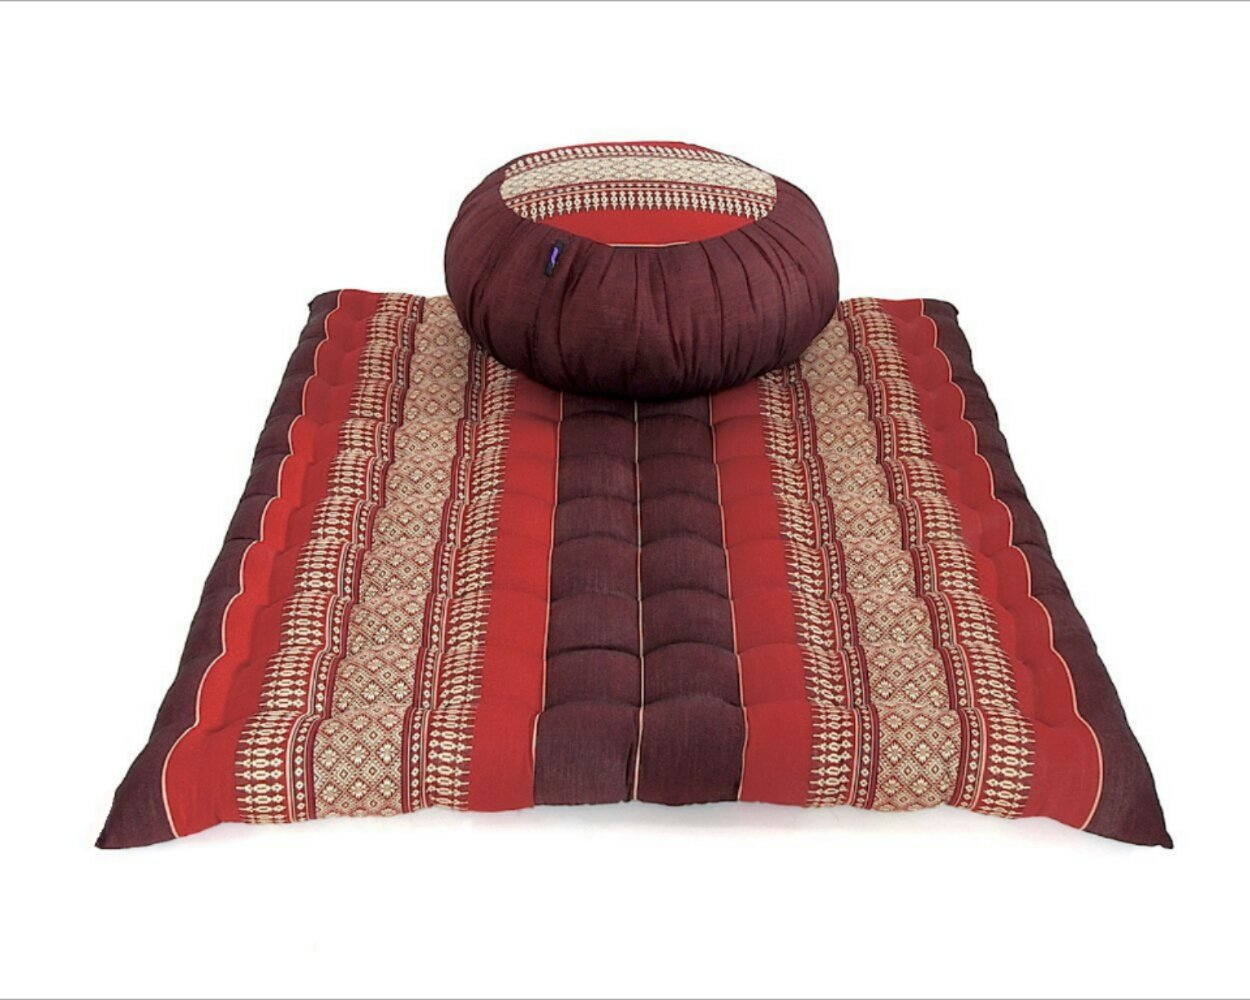 Meditation Set: Zafu Cushion, Zabuton Mat, Kapok Fabric, 30x28x10 inches. (Dark Red - Red) by UnseenThailand Warehouse